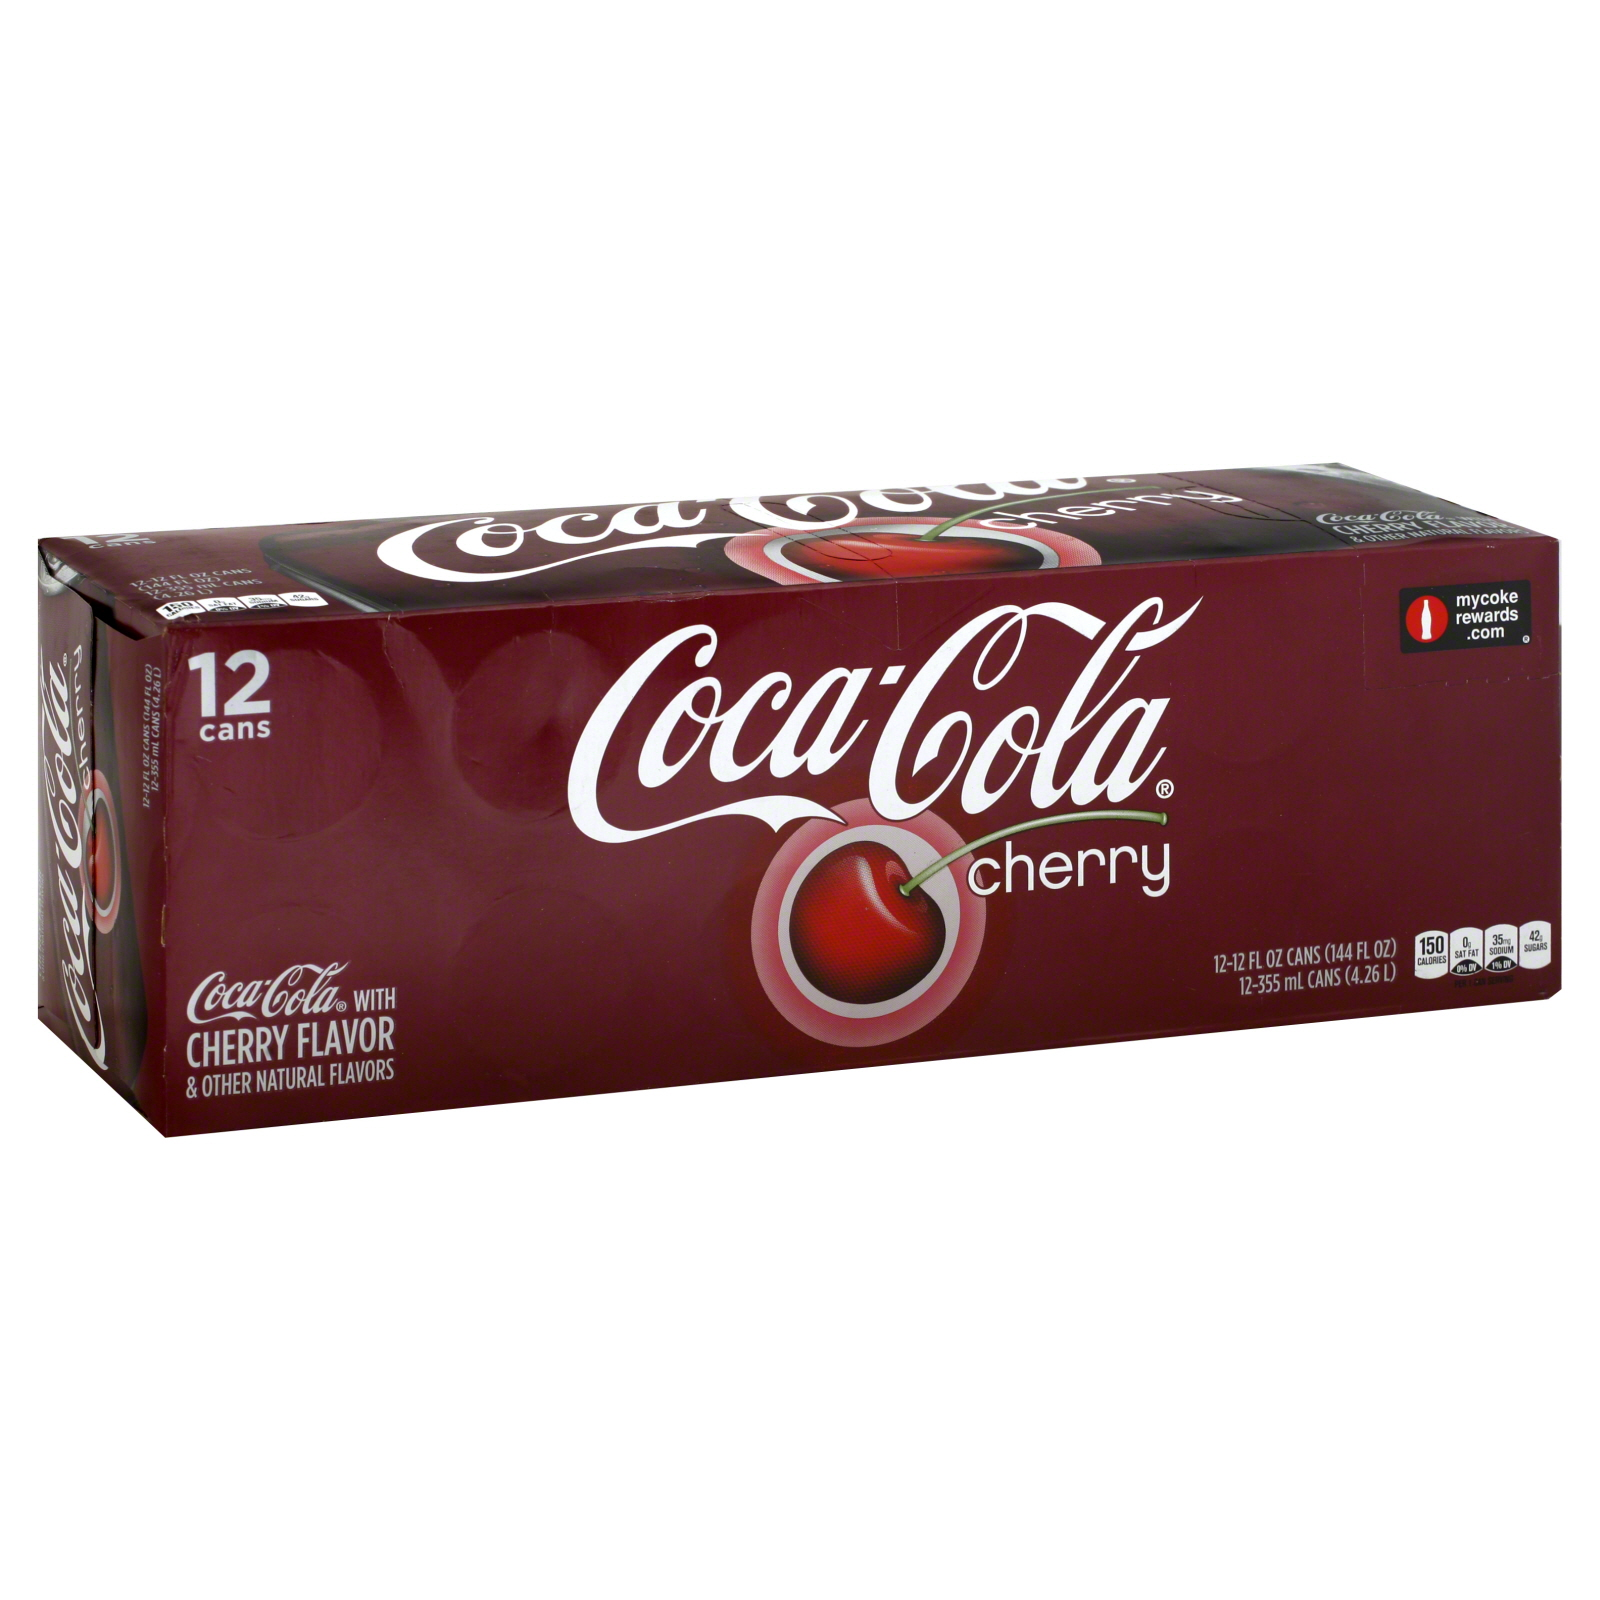 Cola, Cherry, Fridge Pack, 12 - 12 fl oz (355 ml) cans [144 fl oz (4.26 lt)]                                                     at mygofer.com